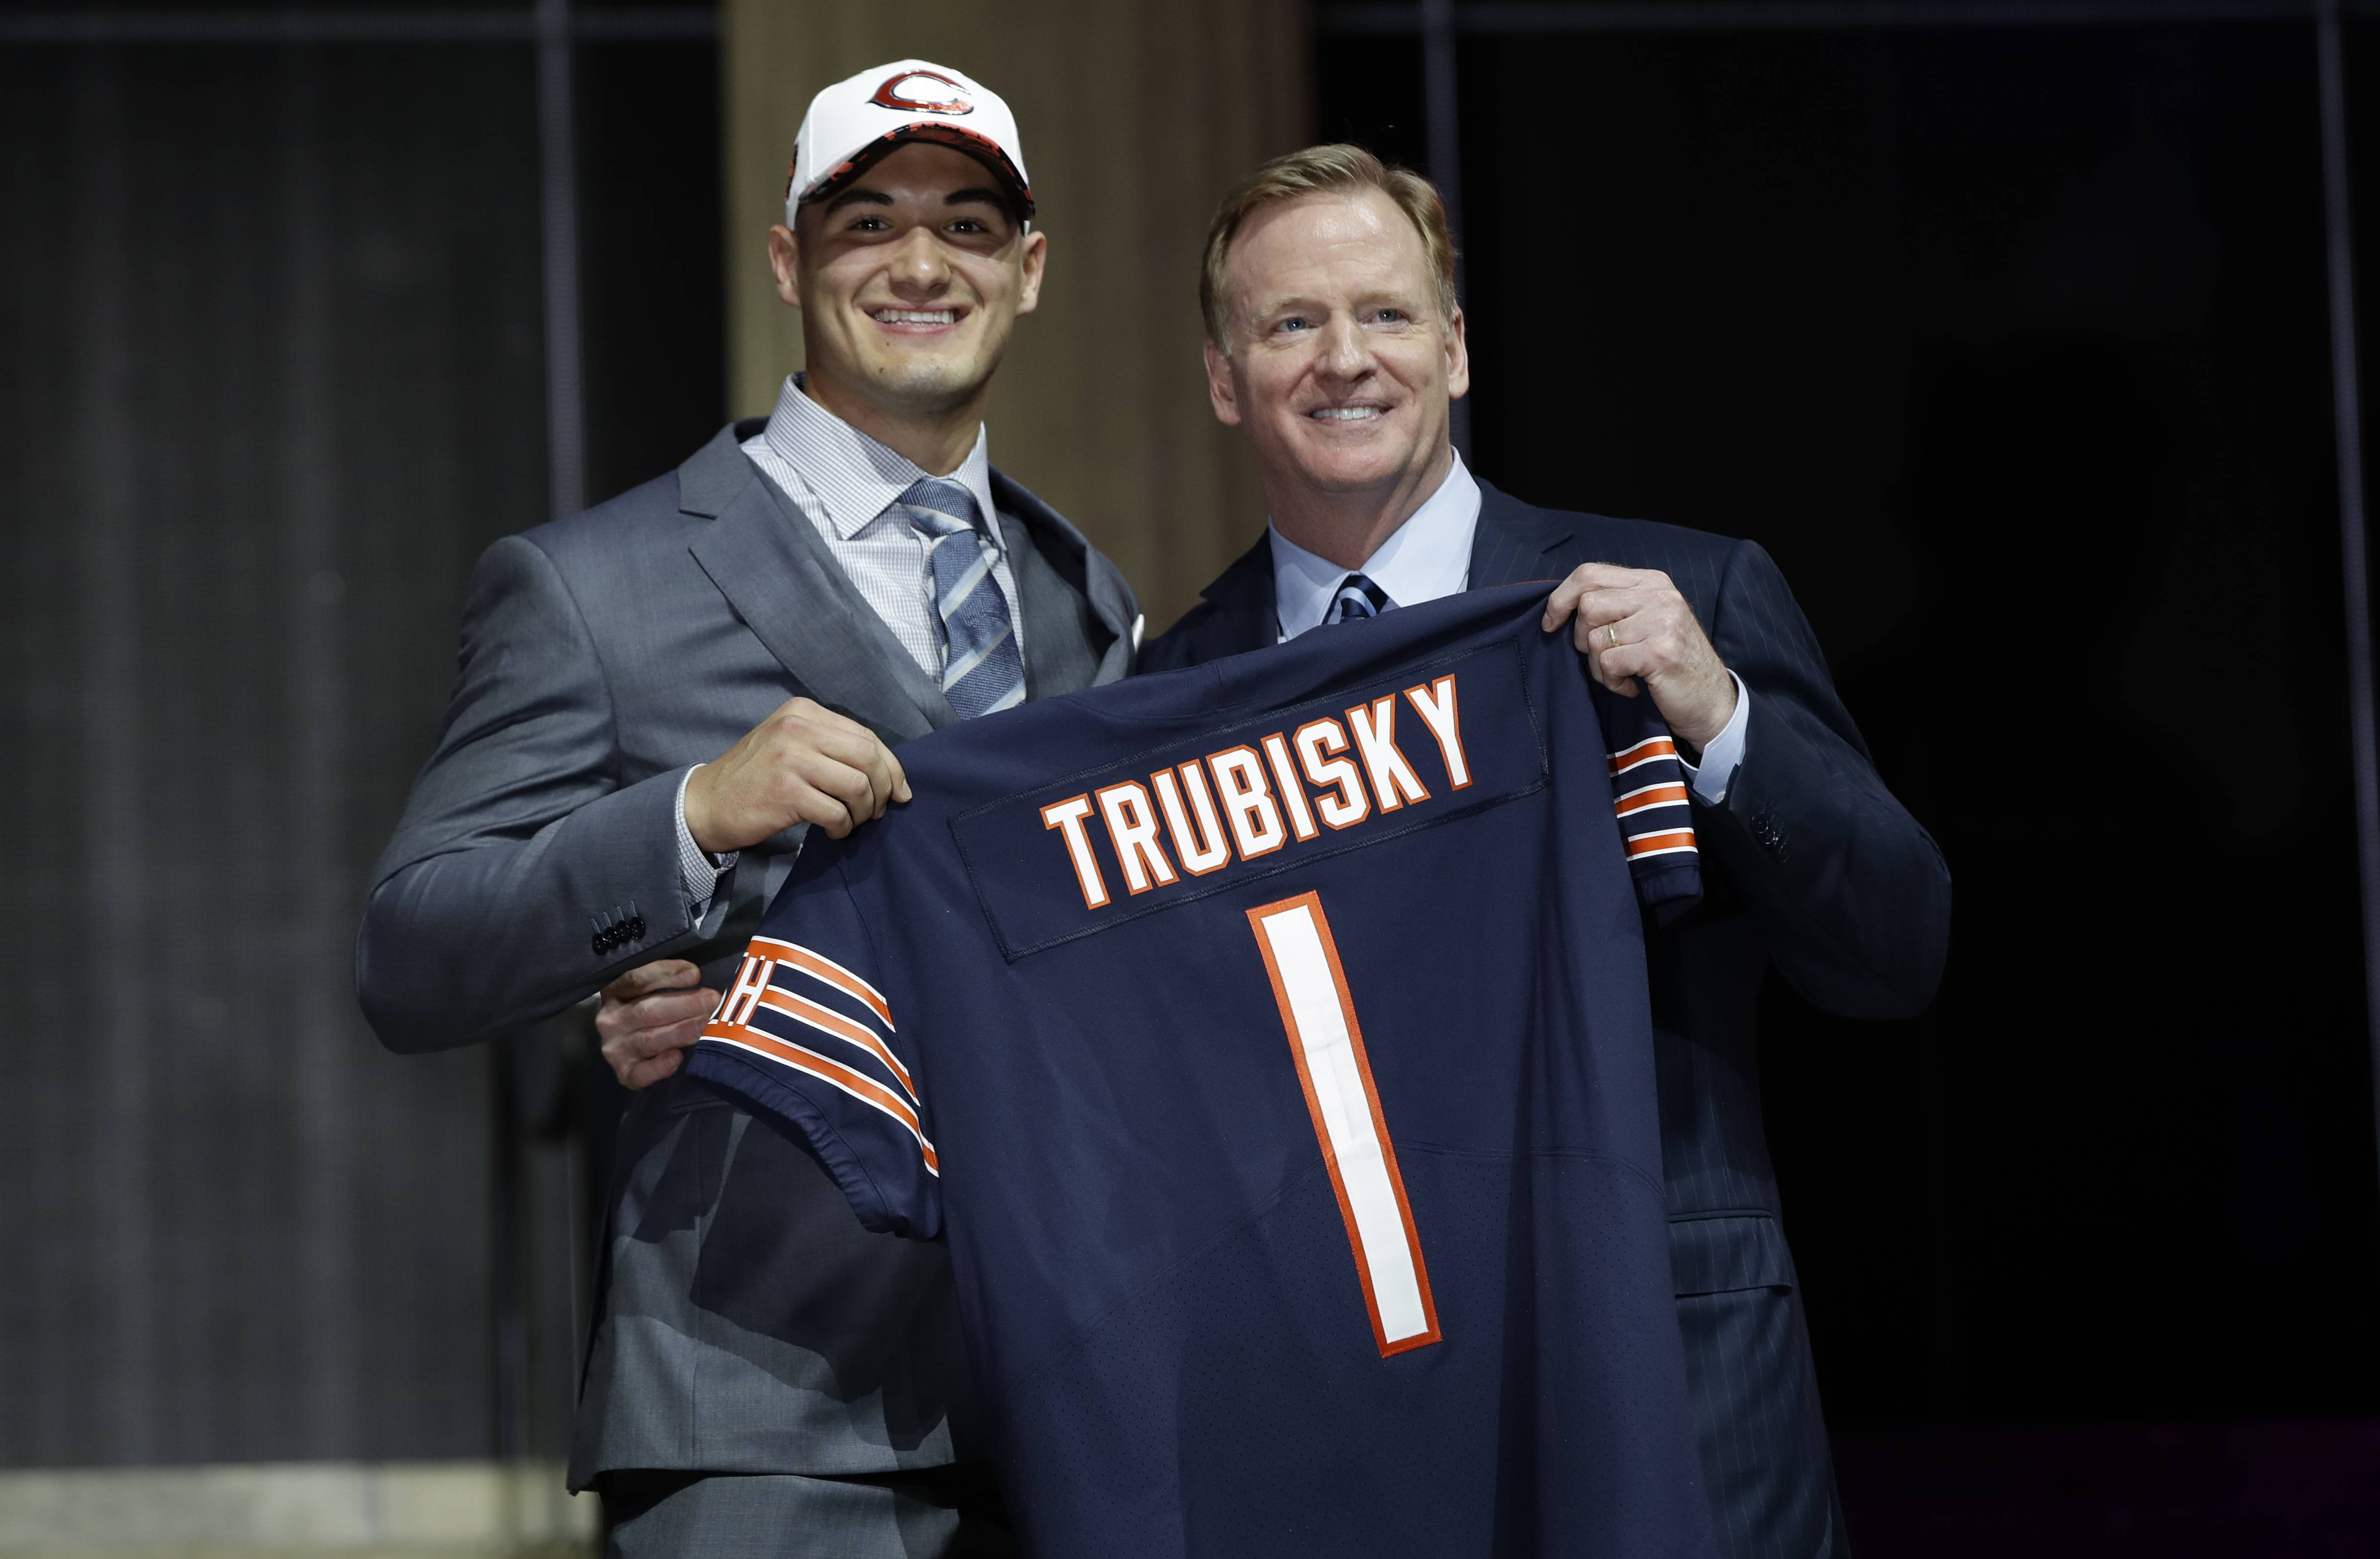 Despite the fact that they'll pay quarterback Mike Glennon $16 million this year, the Bears traded up one spot to No. 2 overall to take North Carolina quarterback Mitchell Trubisky.